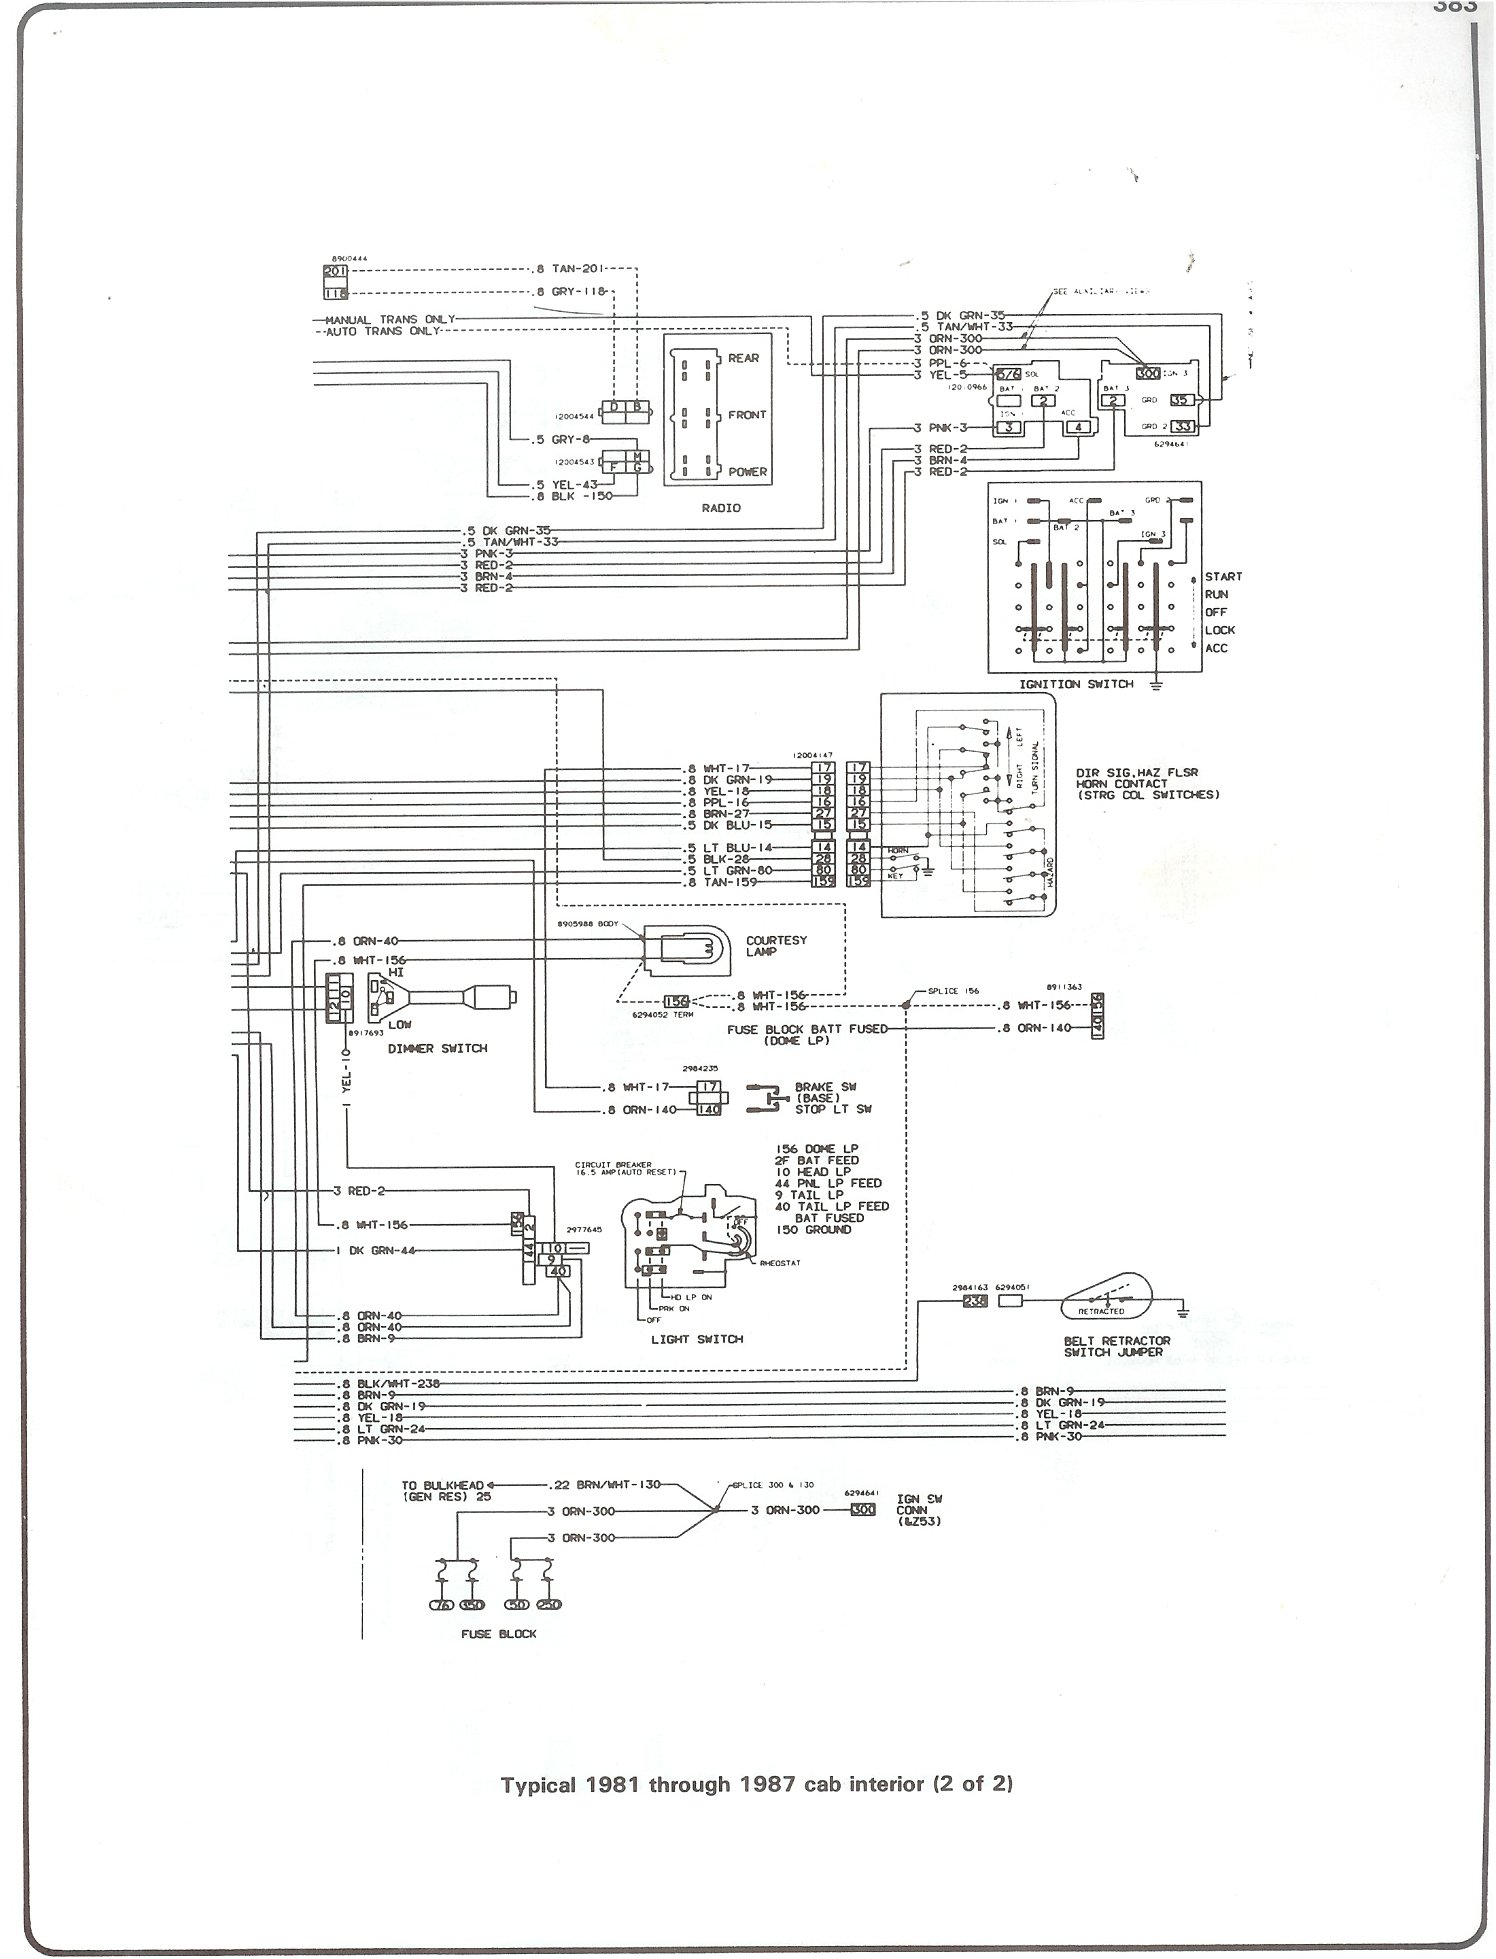 fuse box diagram for 1982 chevy caprice wiring diagramfuse box diagram for 1982 chevy caprice